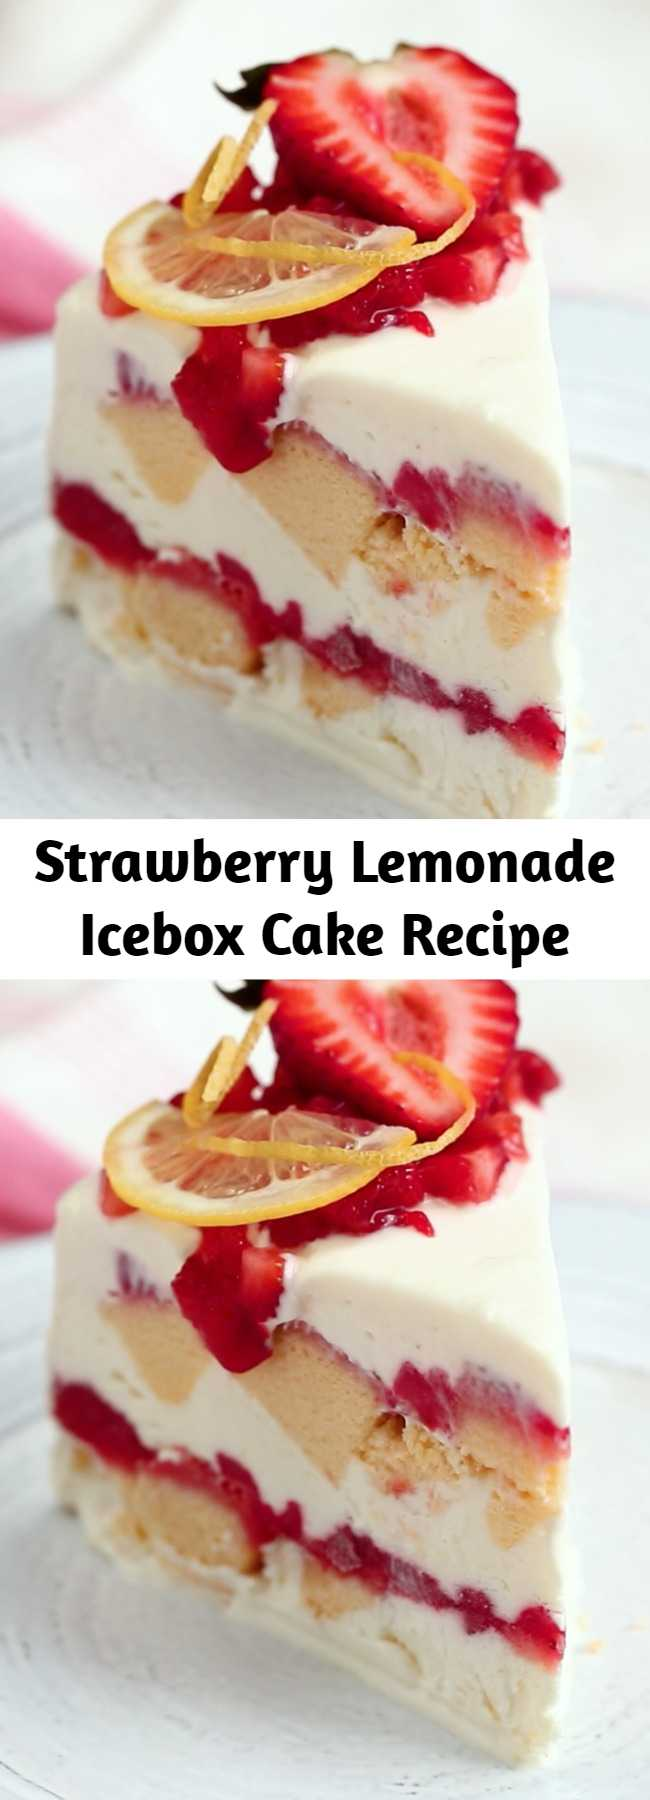 Strawberry Lemonade Icebox Cake Recipe - Layers of pound cake, strawberries and frozen cream form the perfect treat for the sunniest of afternoons.